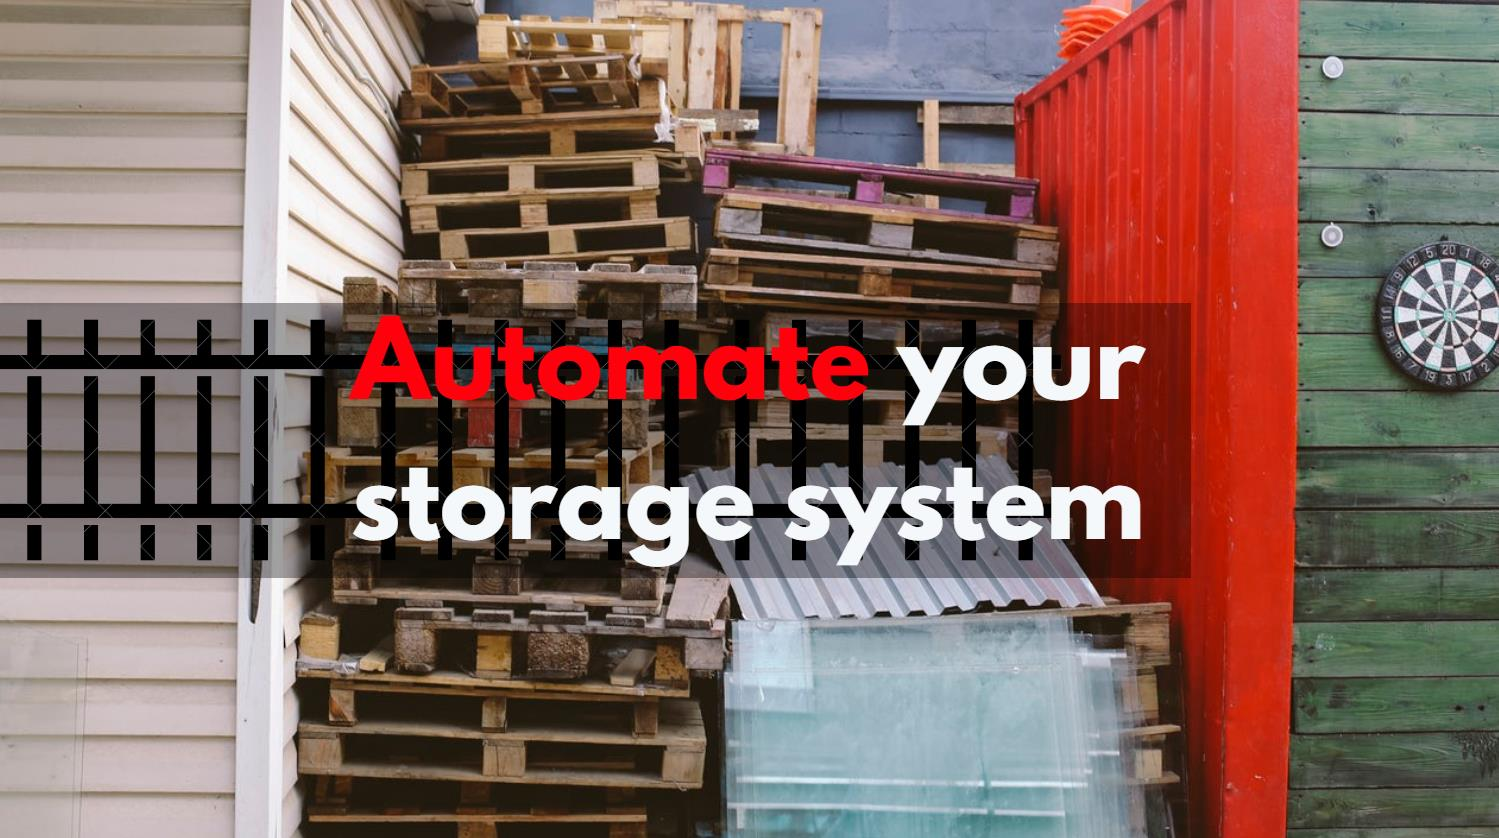 Automate Your Storage System